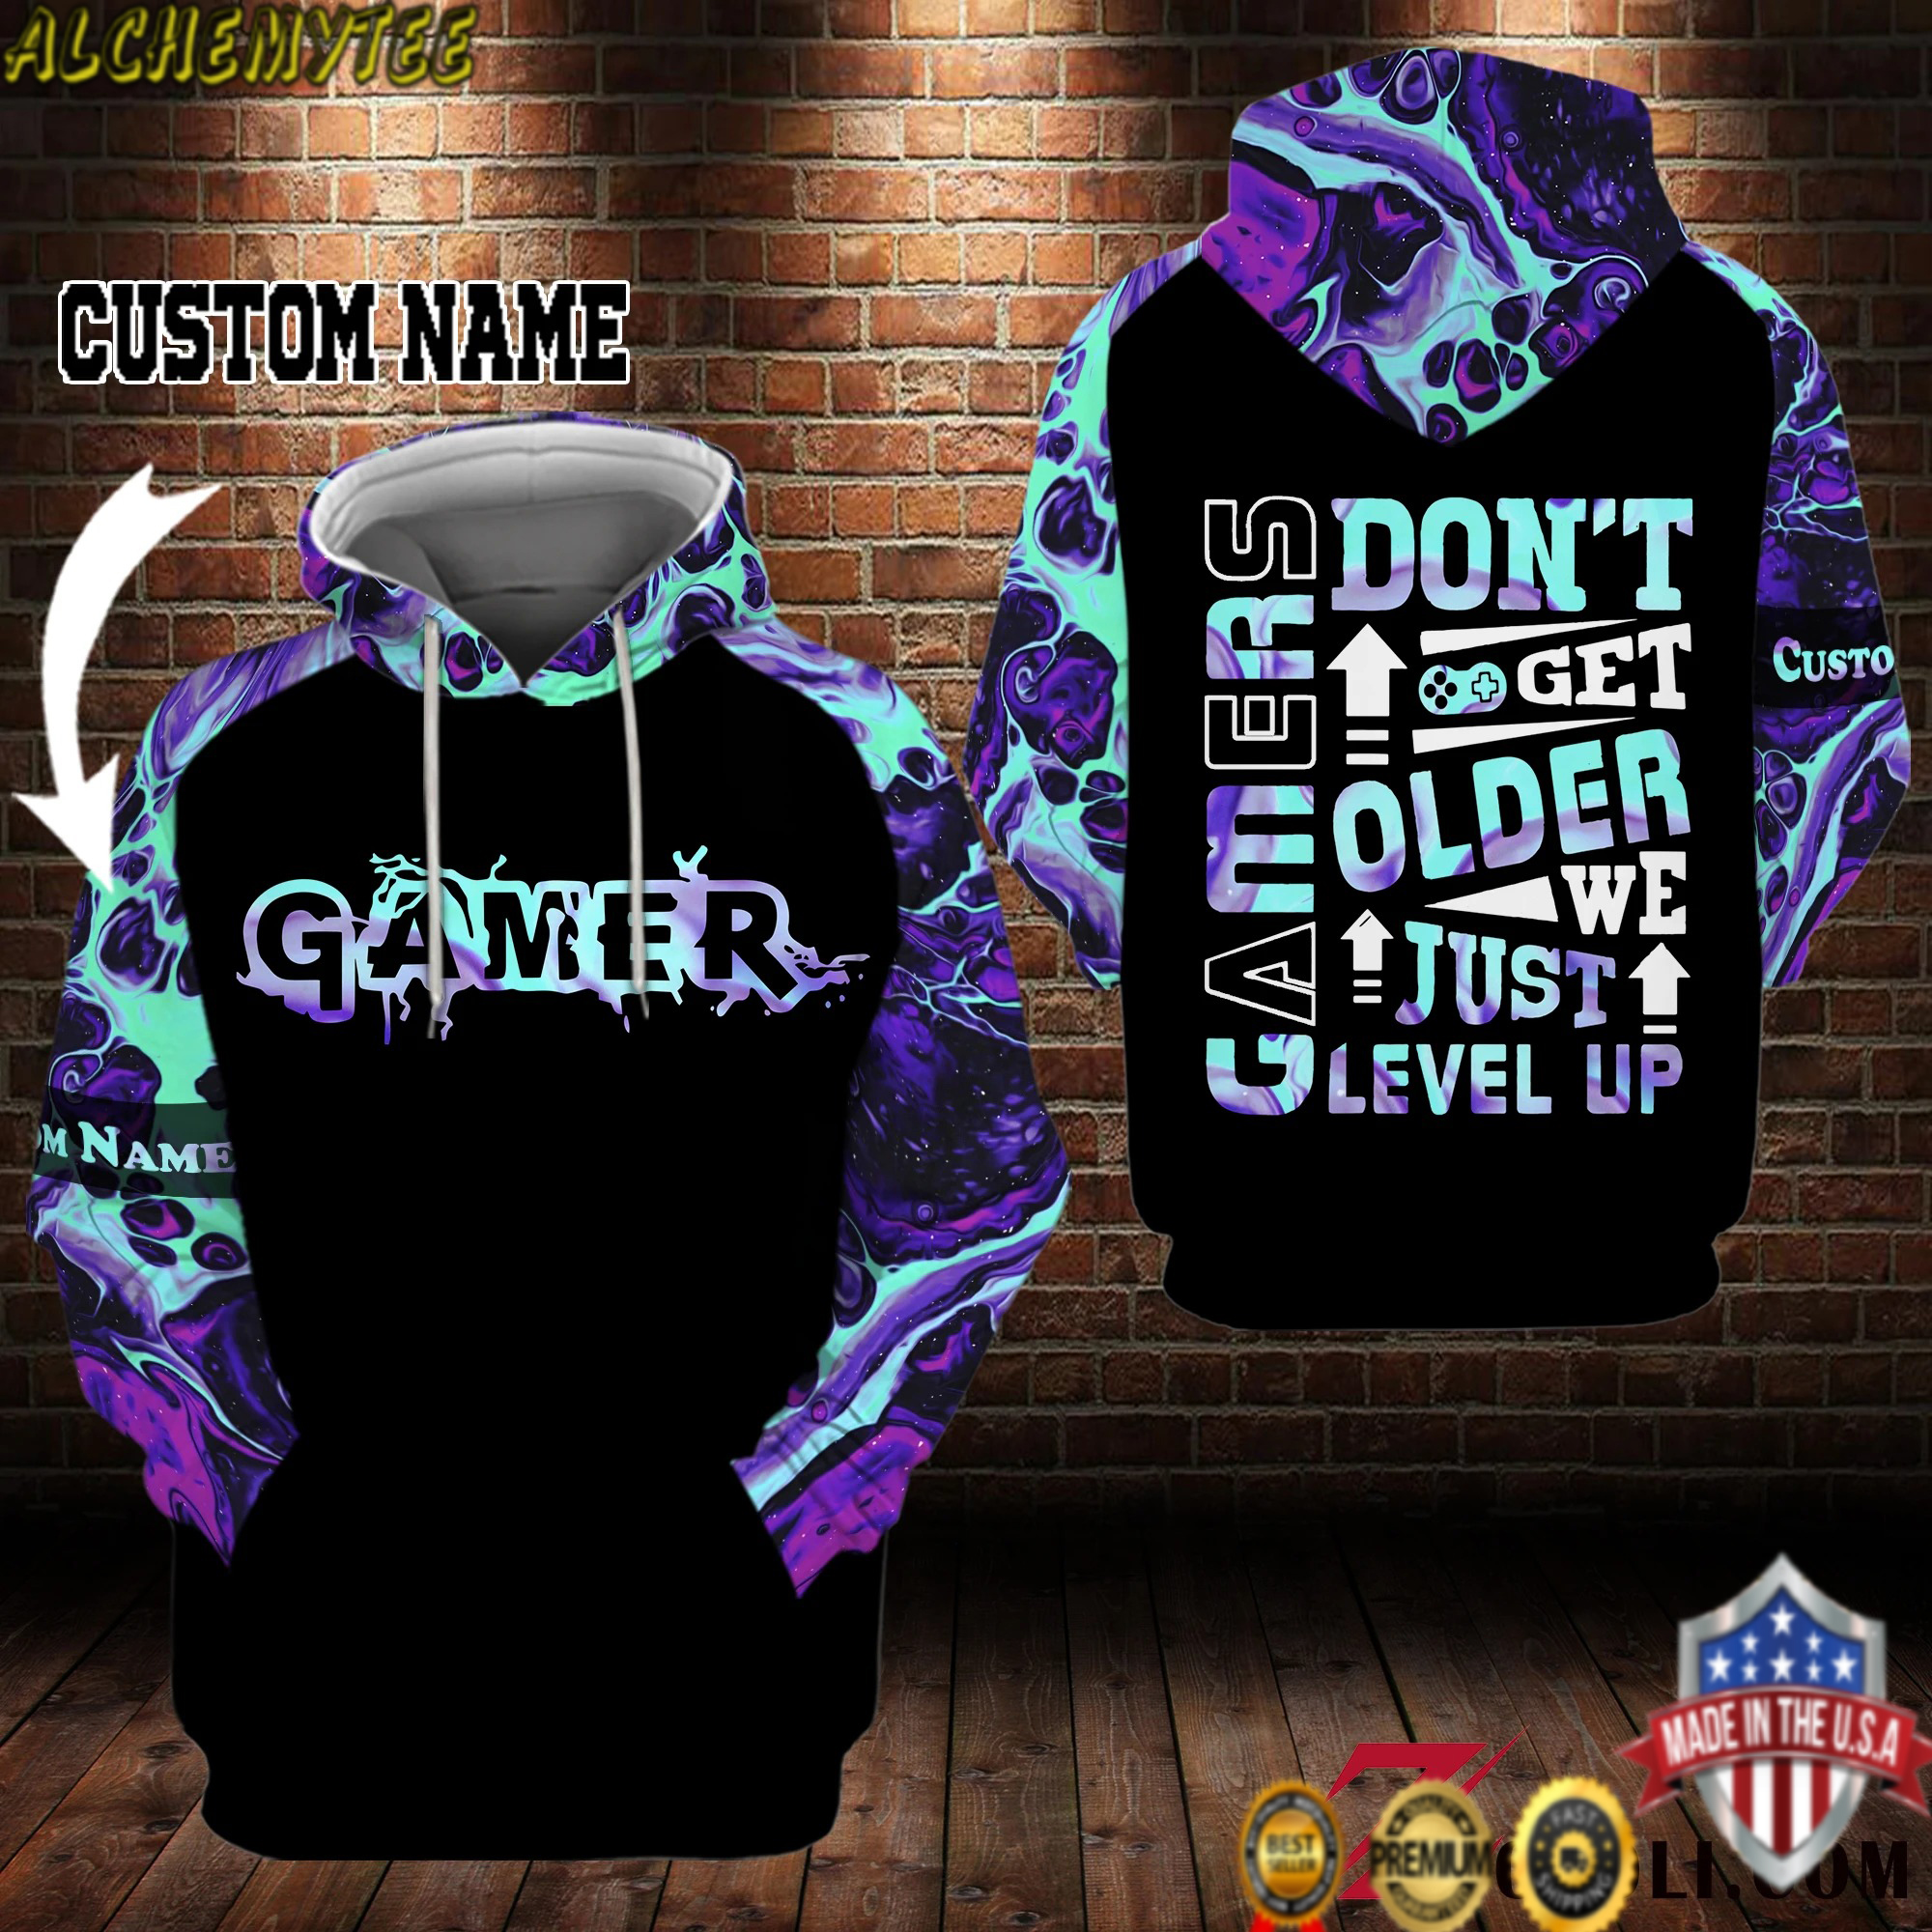 Personalized Name Gamers don't get older we just level up 3d hoodie